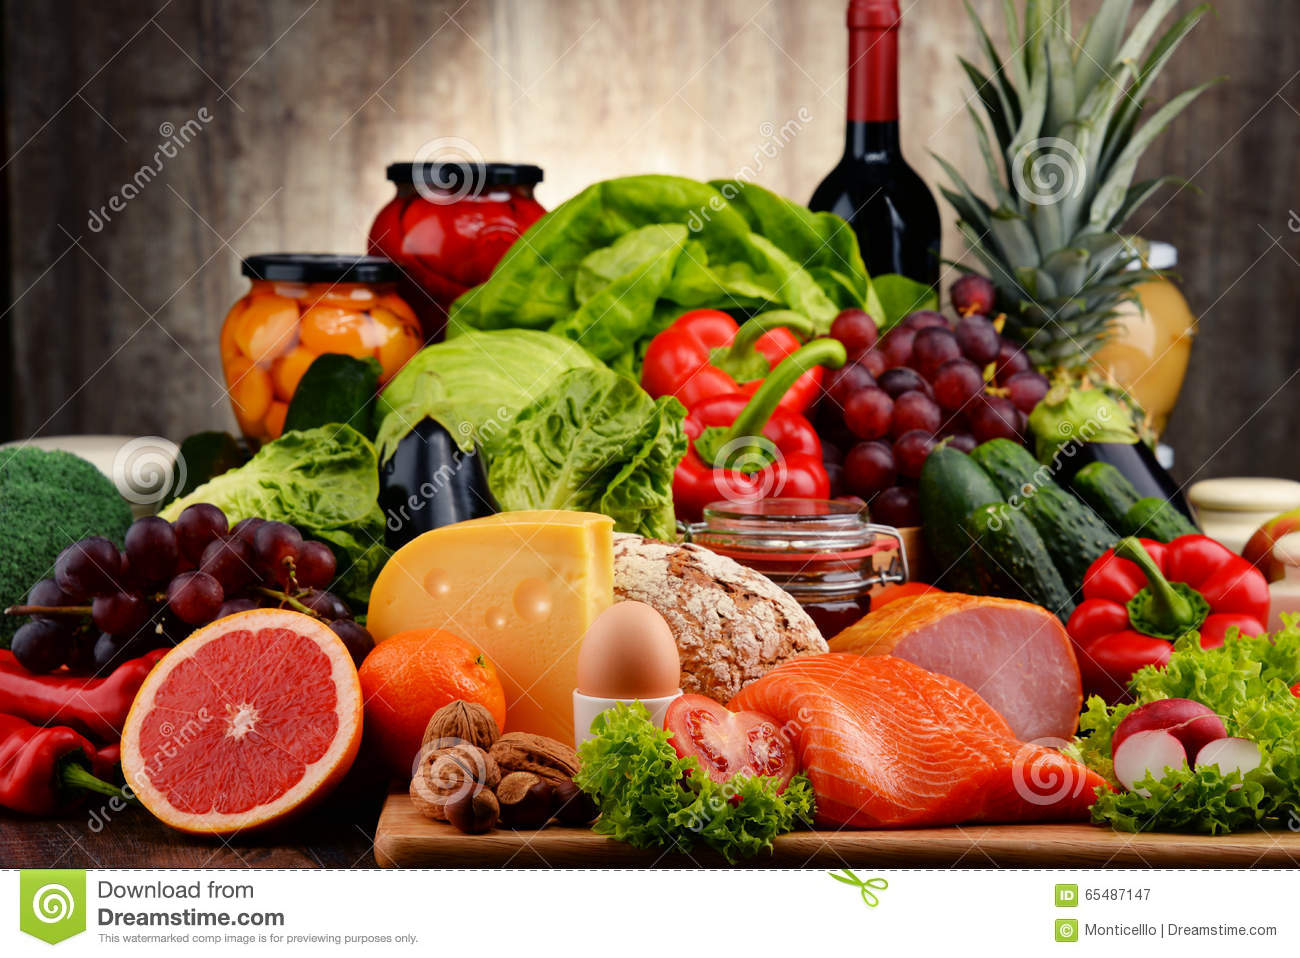 meat and fruit diet sharon fruit